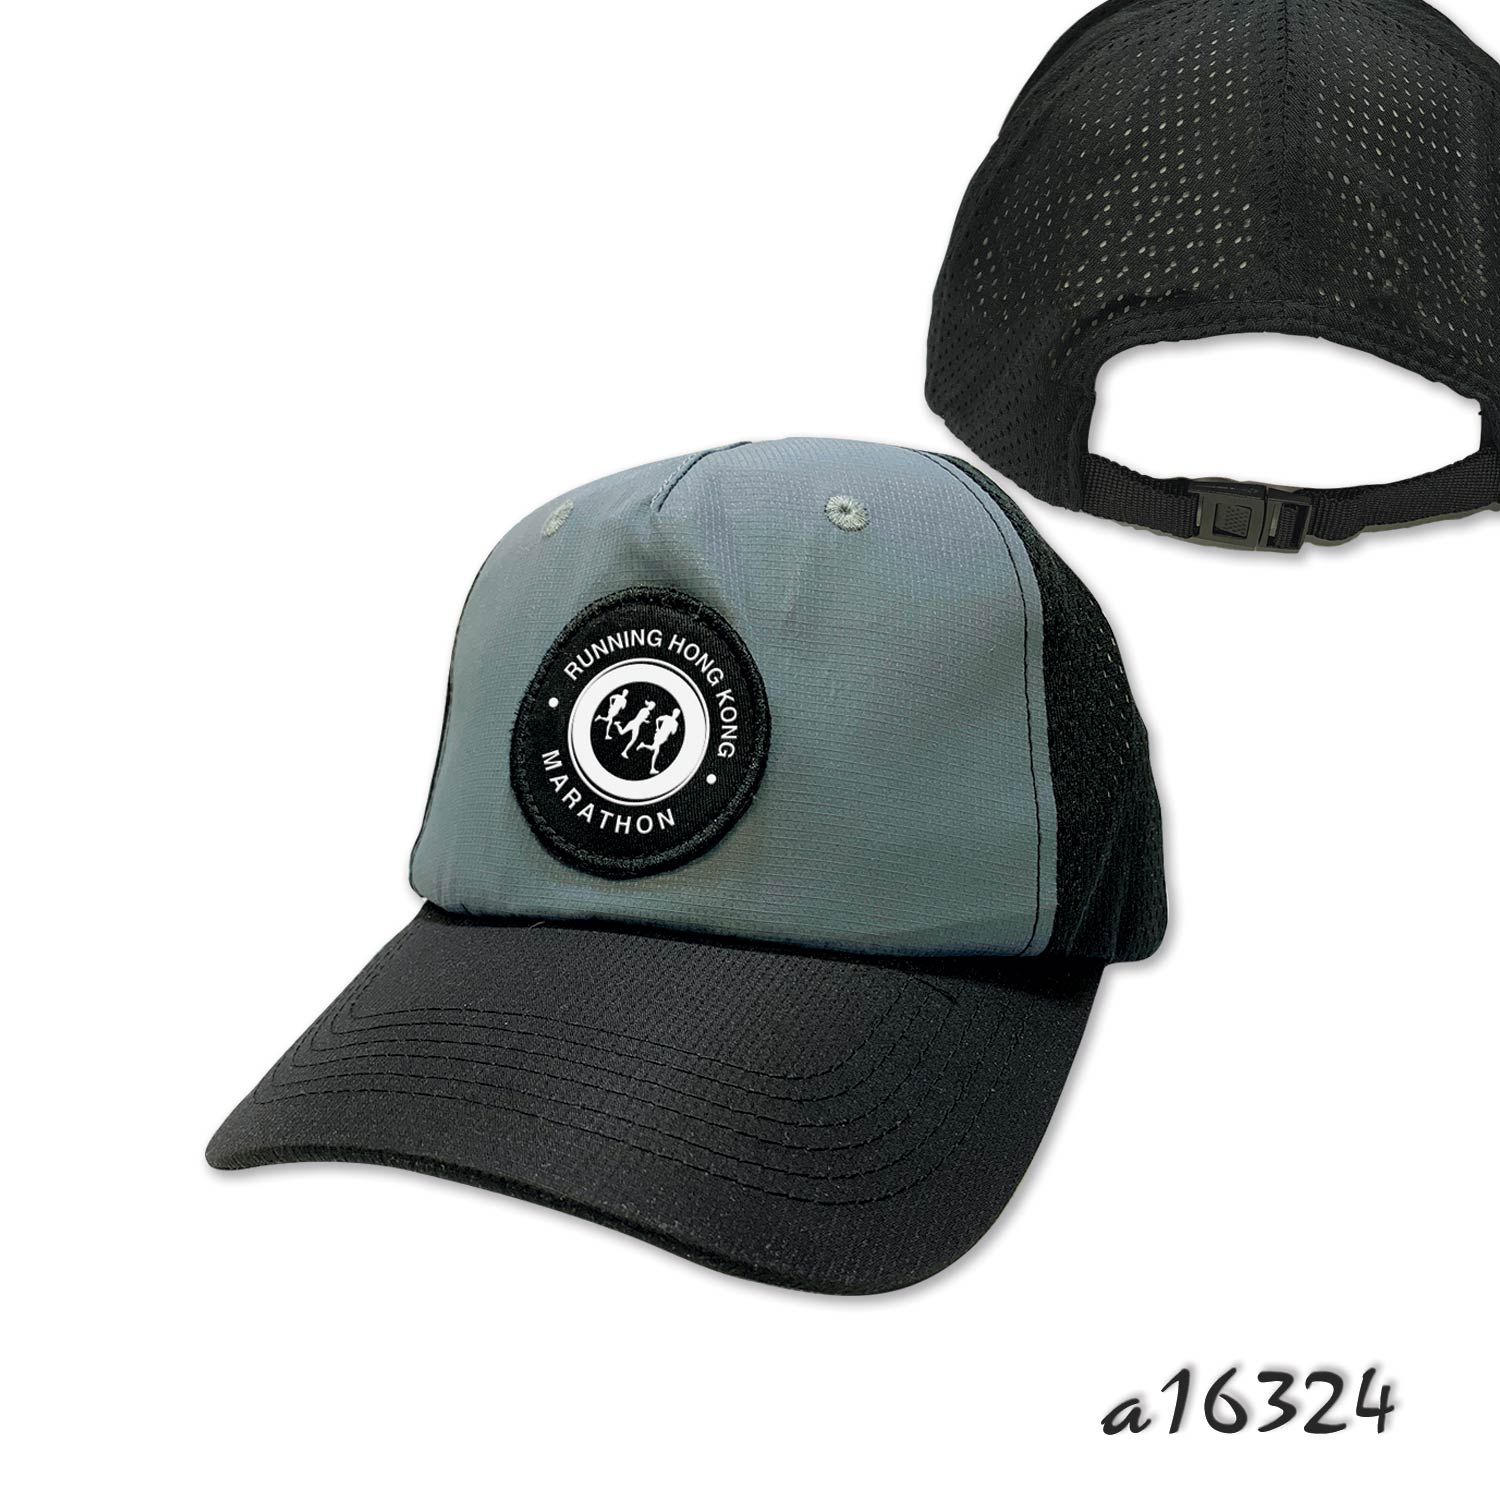 Soft trucker with front sewn on label and adjustable closure strap buckle